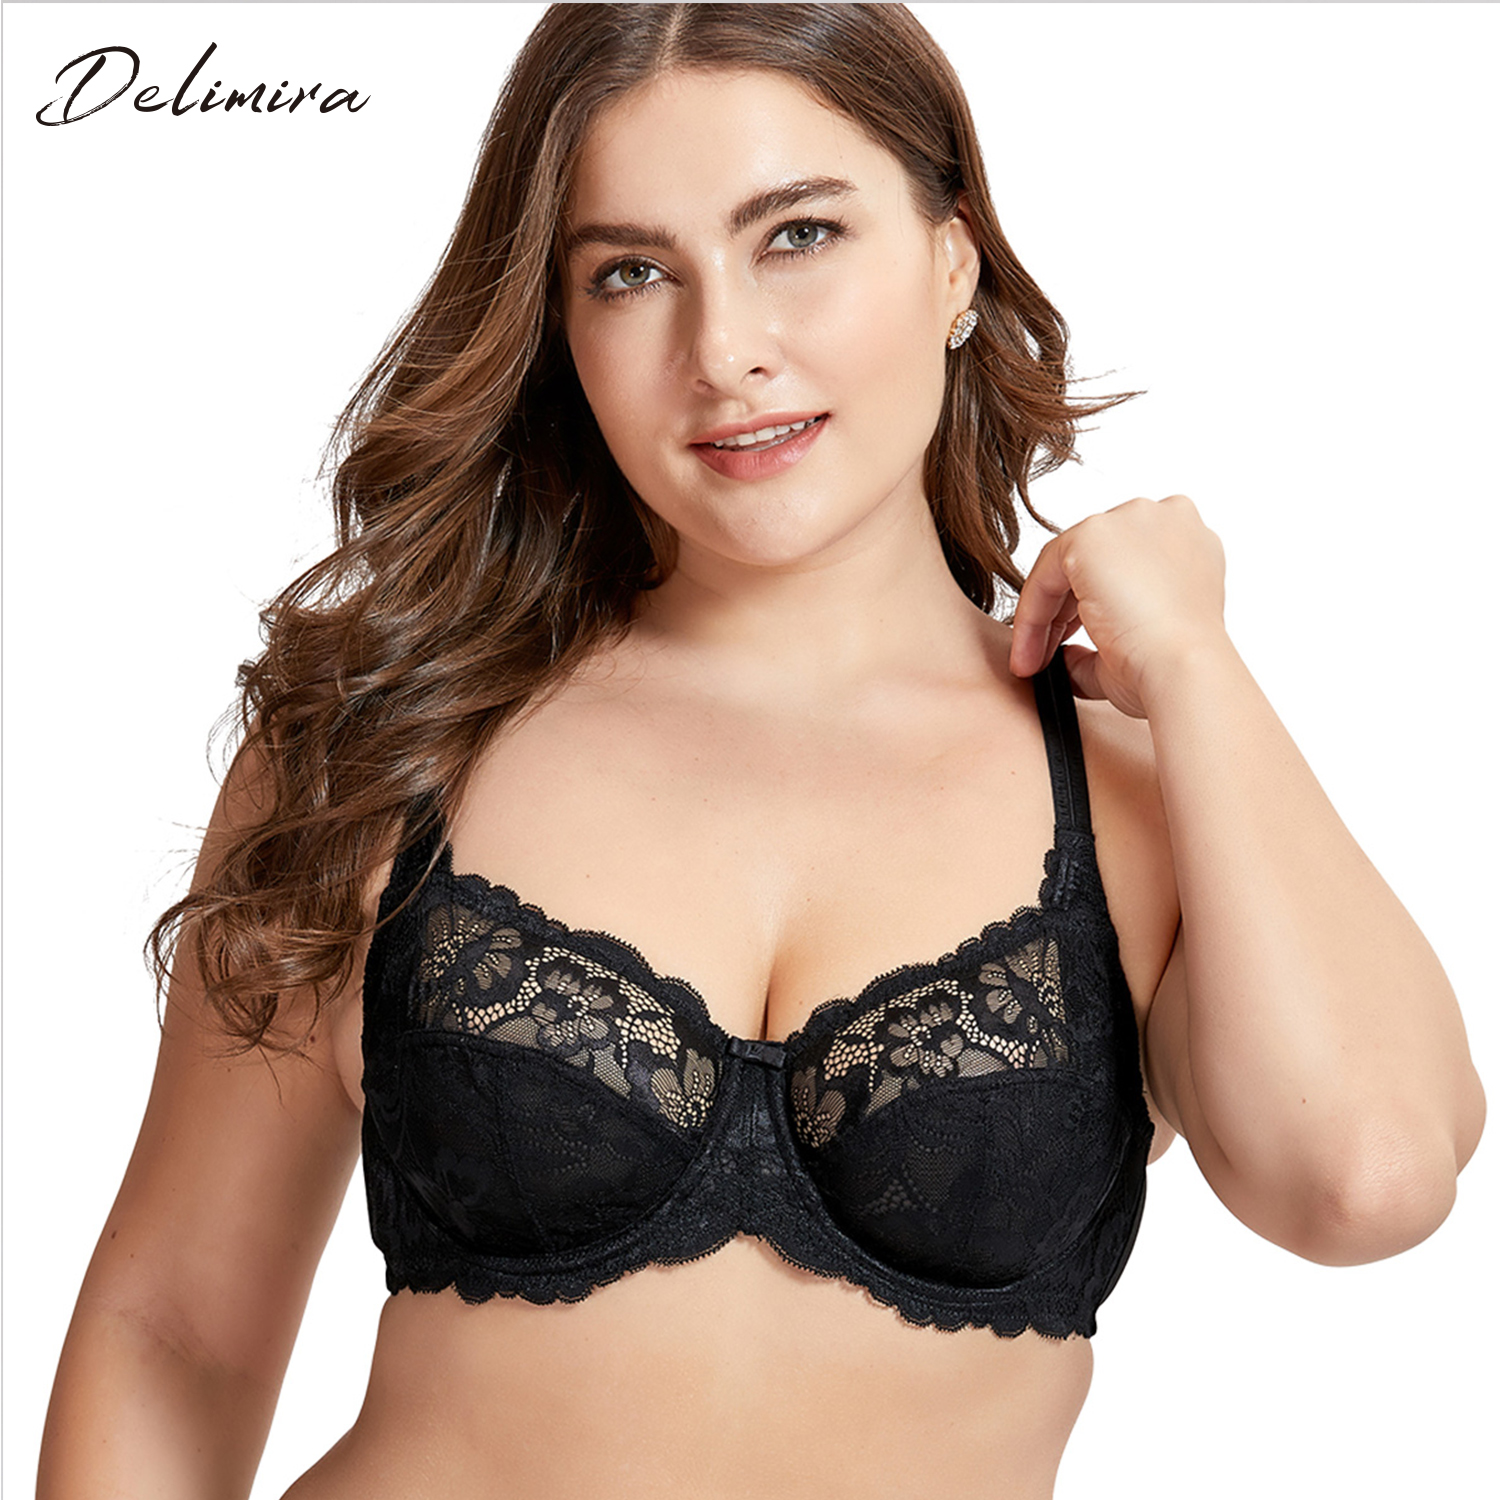 00da64f87a9 Detail Feedback Questions about DELIMIRA Women s Sexy Plus Size Sheer Lace  Bra Non Padded Underwire Balconette on Aliexpress.com